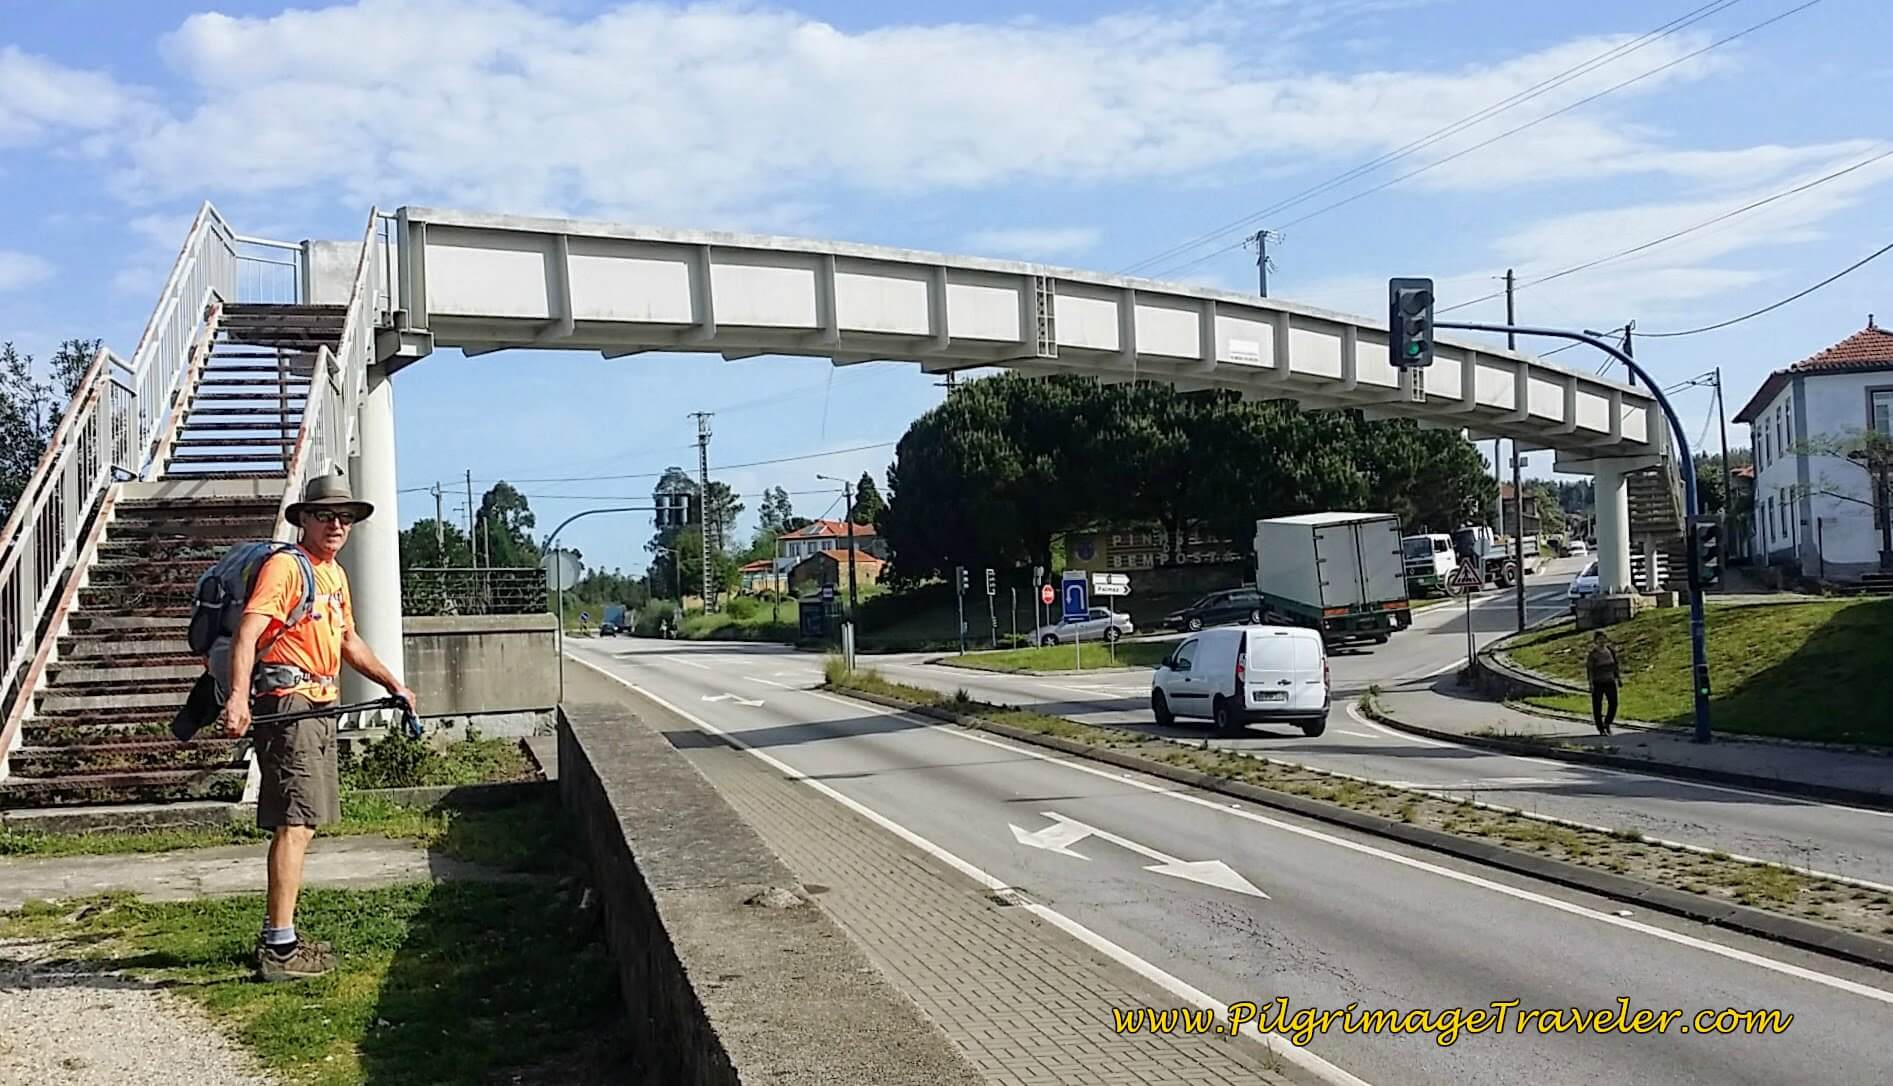 Up and Over the N1 on Pedestrian Bridge on the Portuguese Way